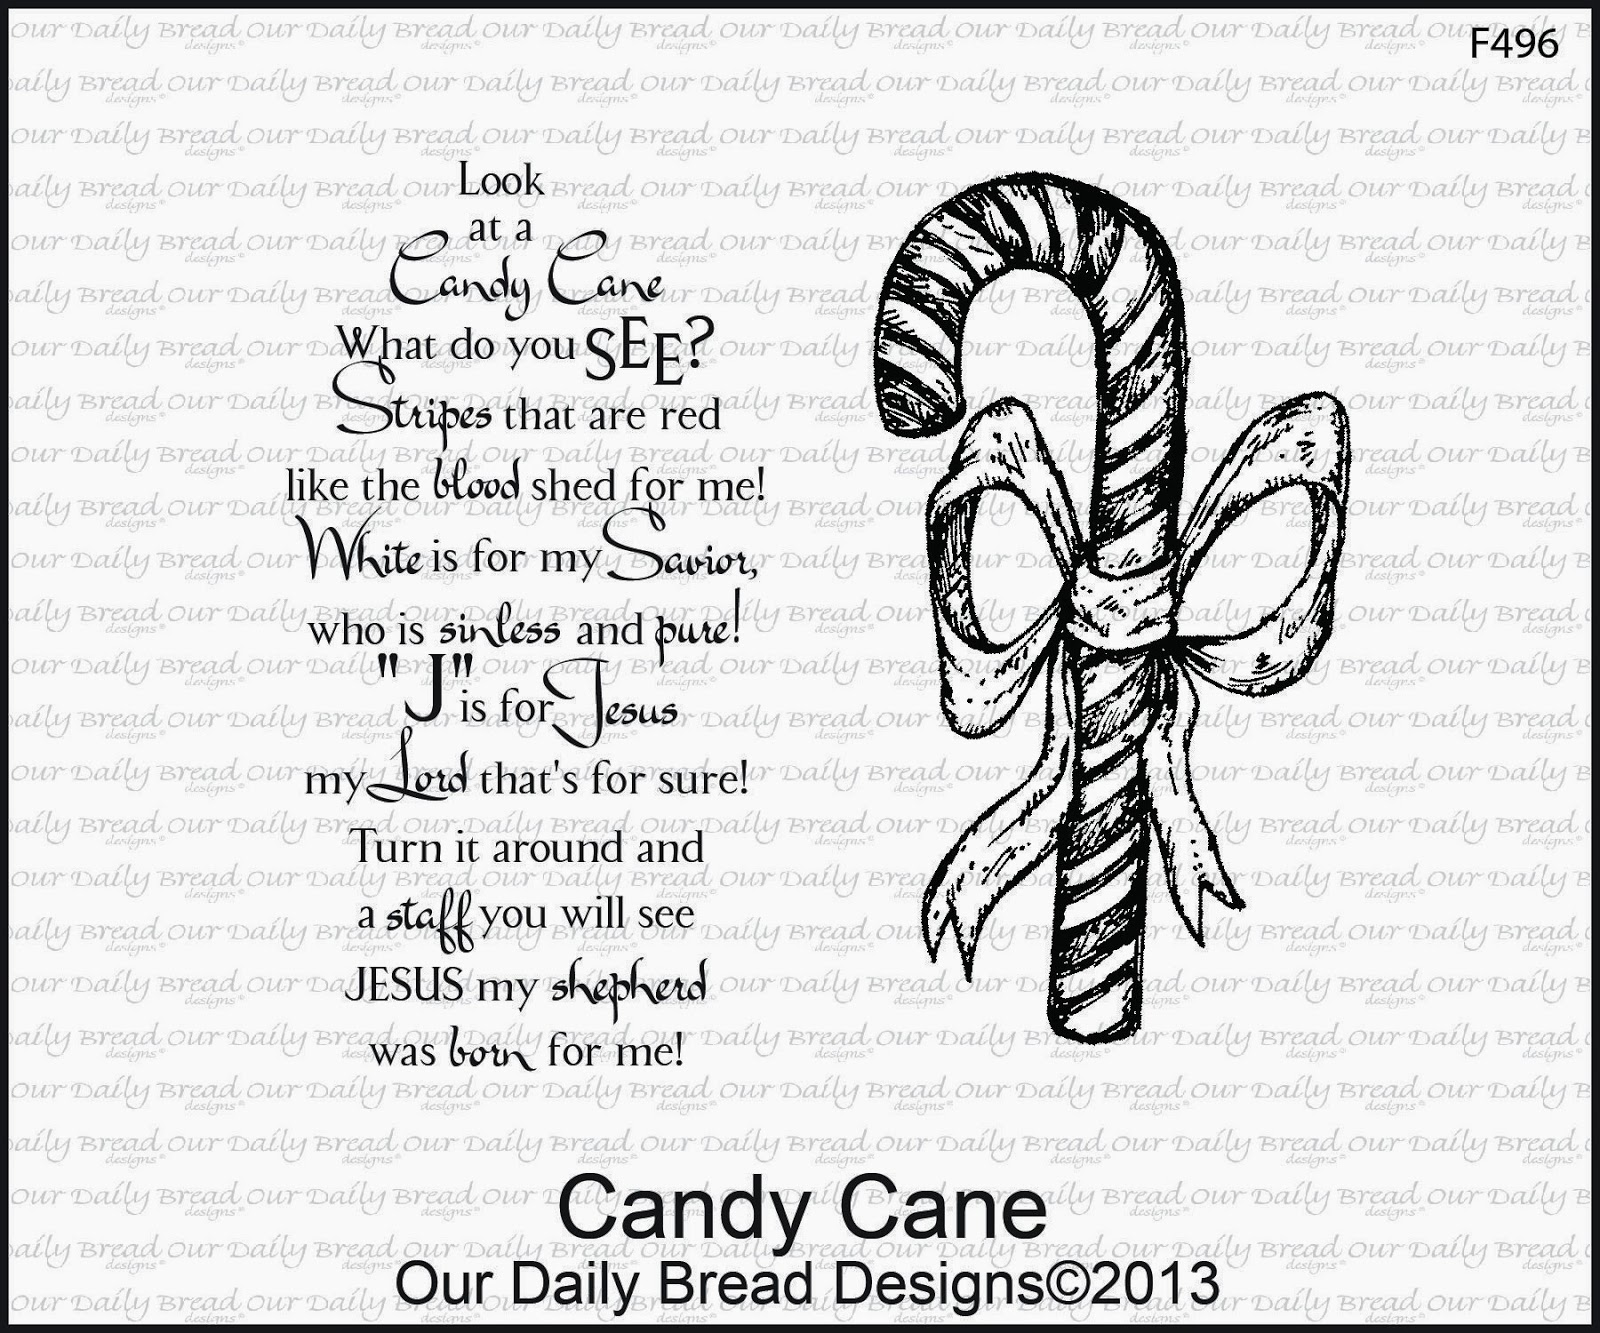 sjbutterflydreams: The meaning of the Candy Cane